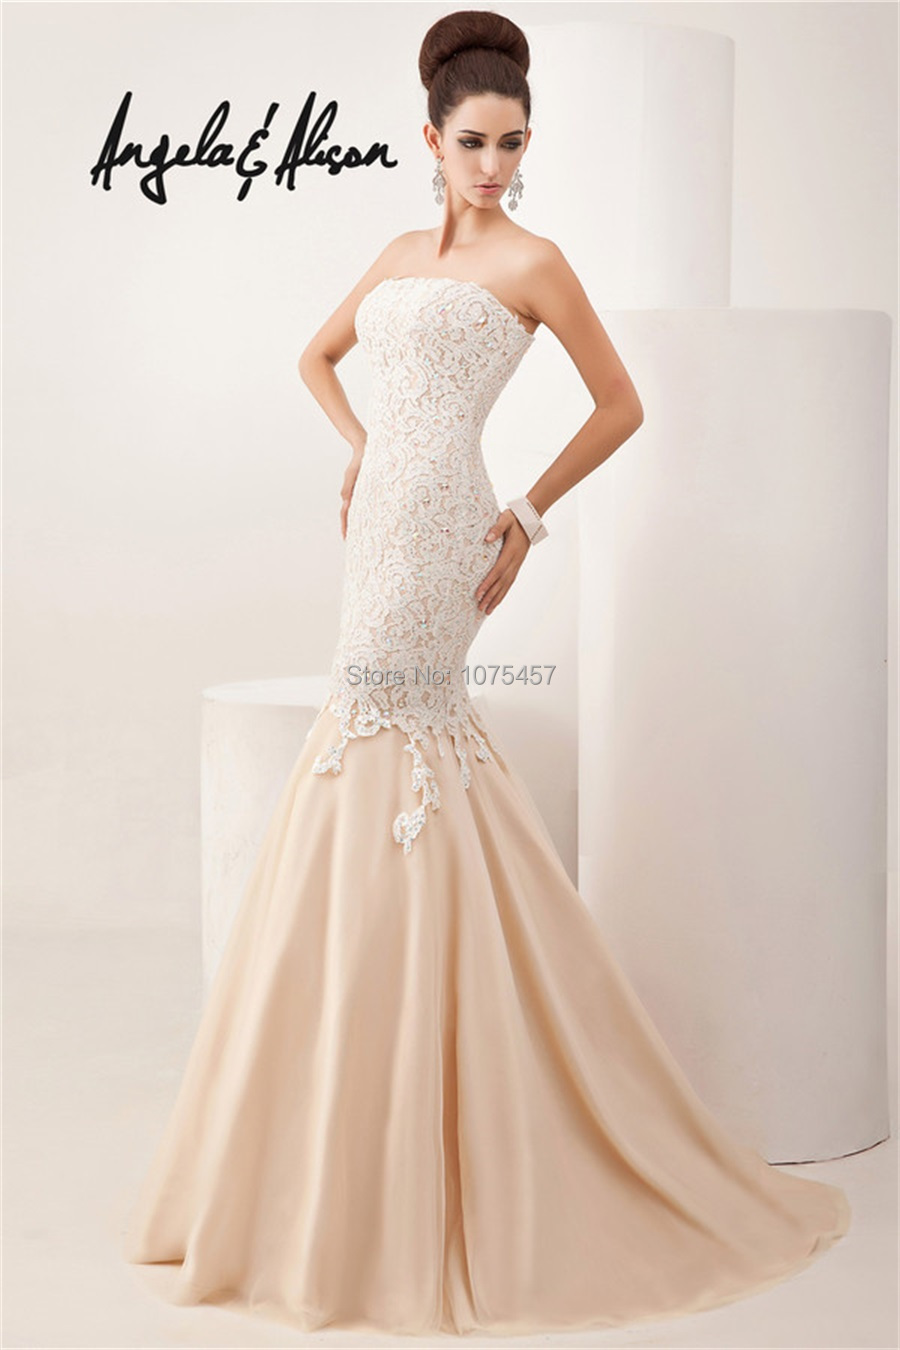 Popular Strapless Beige Prom Dress-Buy Cheap Strapless Beige Prom ...